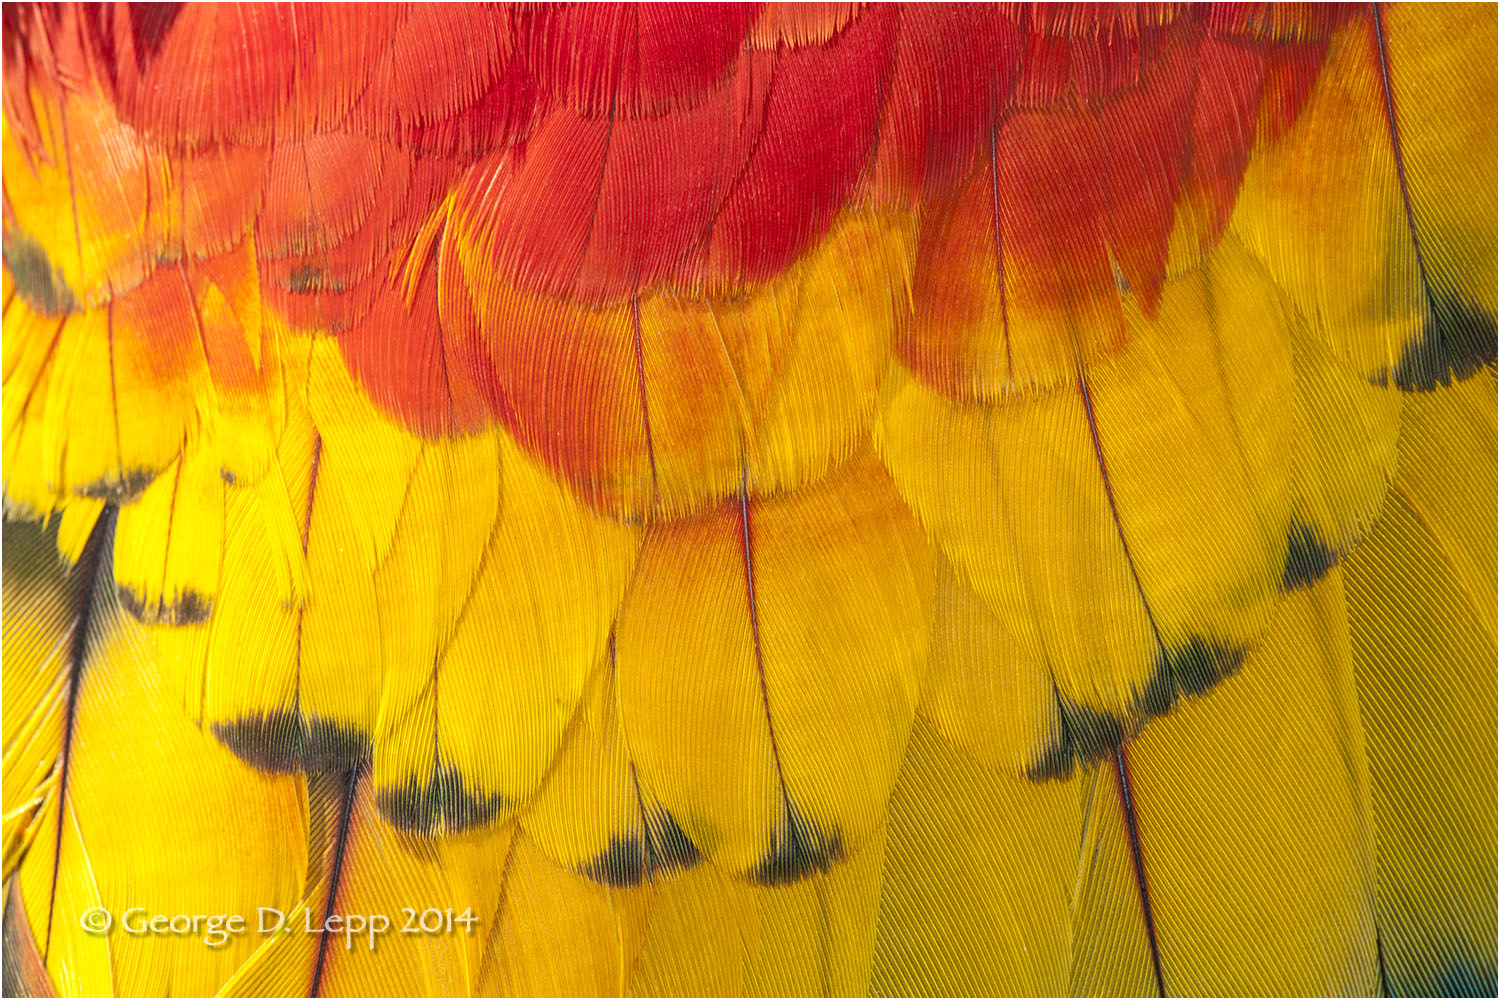 Parrot feathers. © George D. Lepp 2014  B-PA-MA-0046